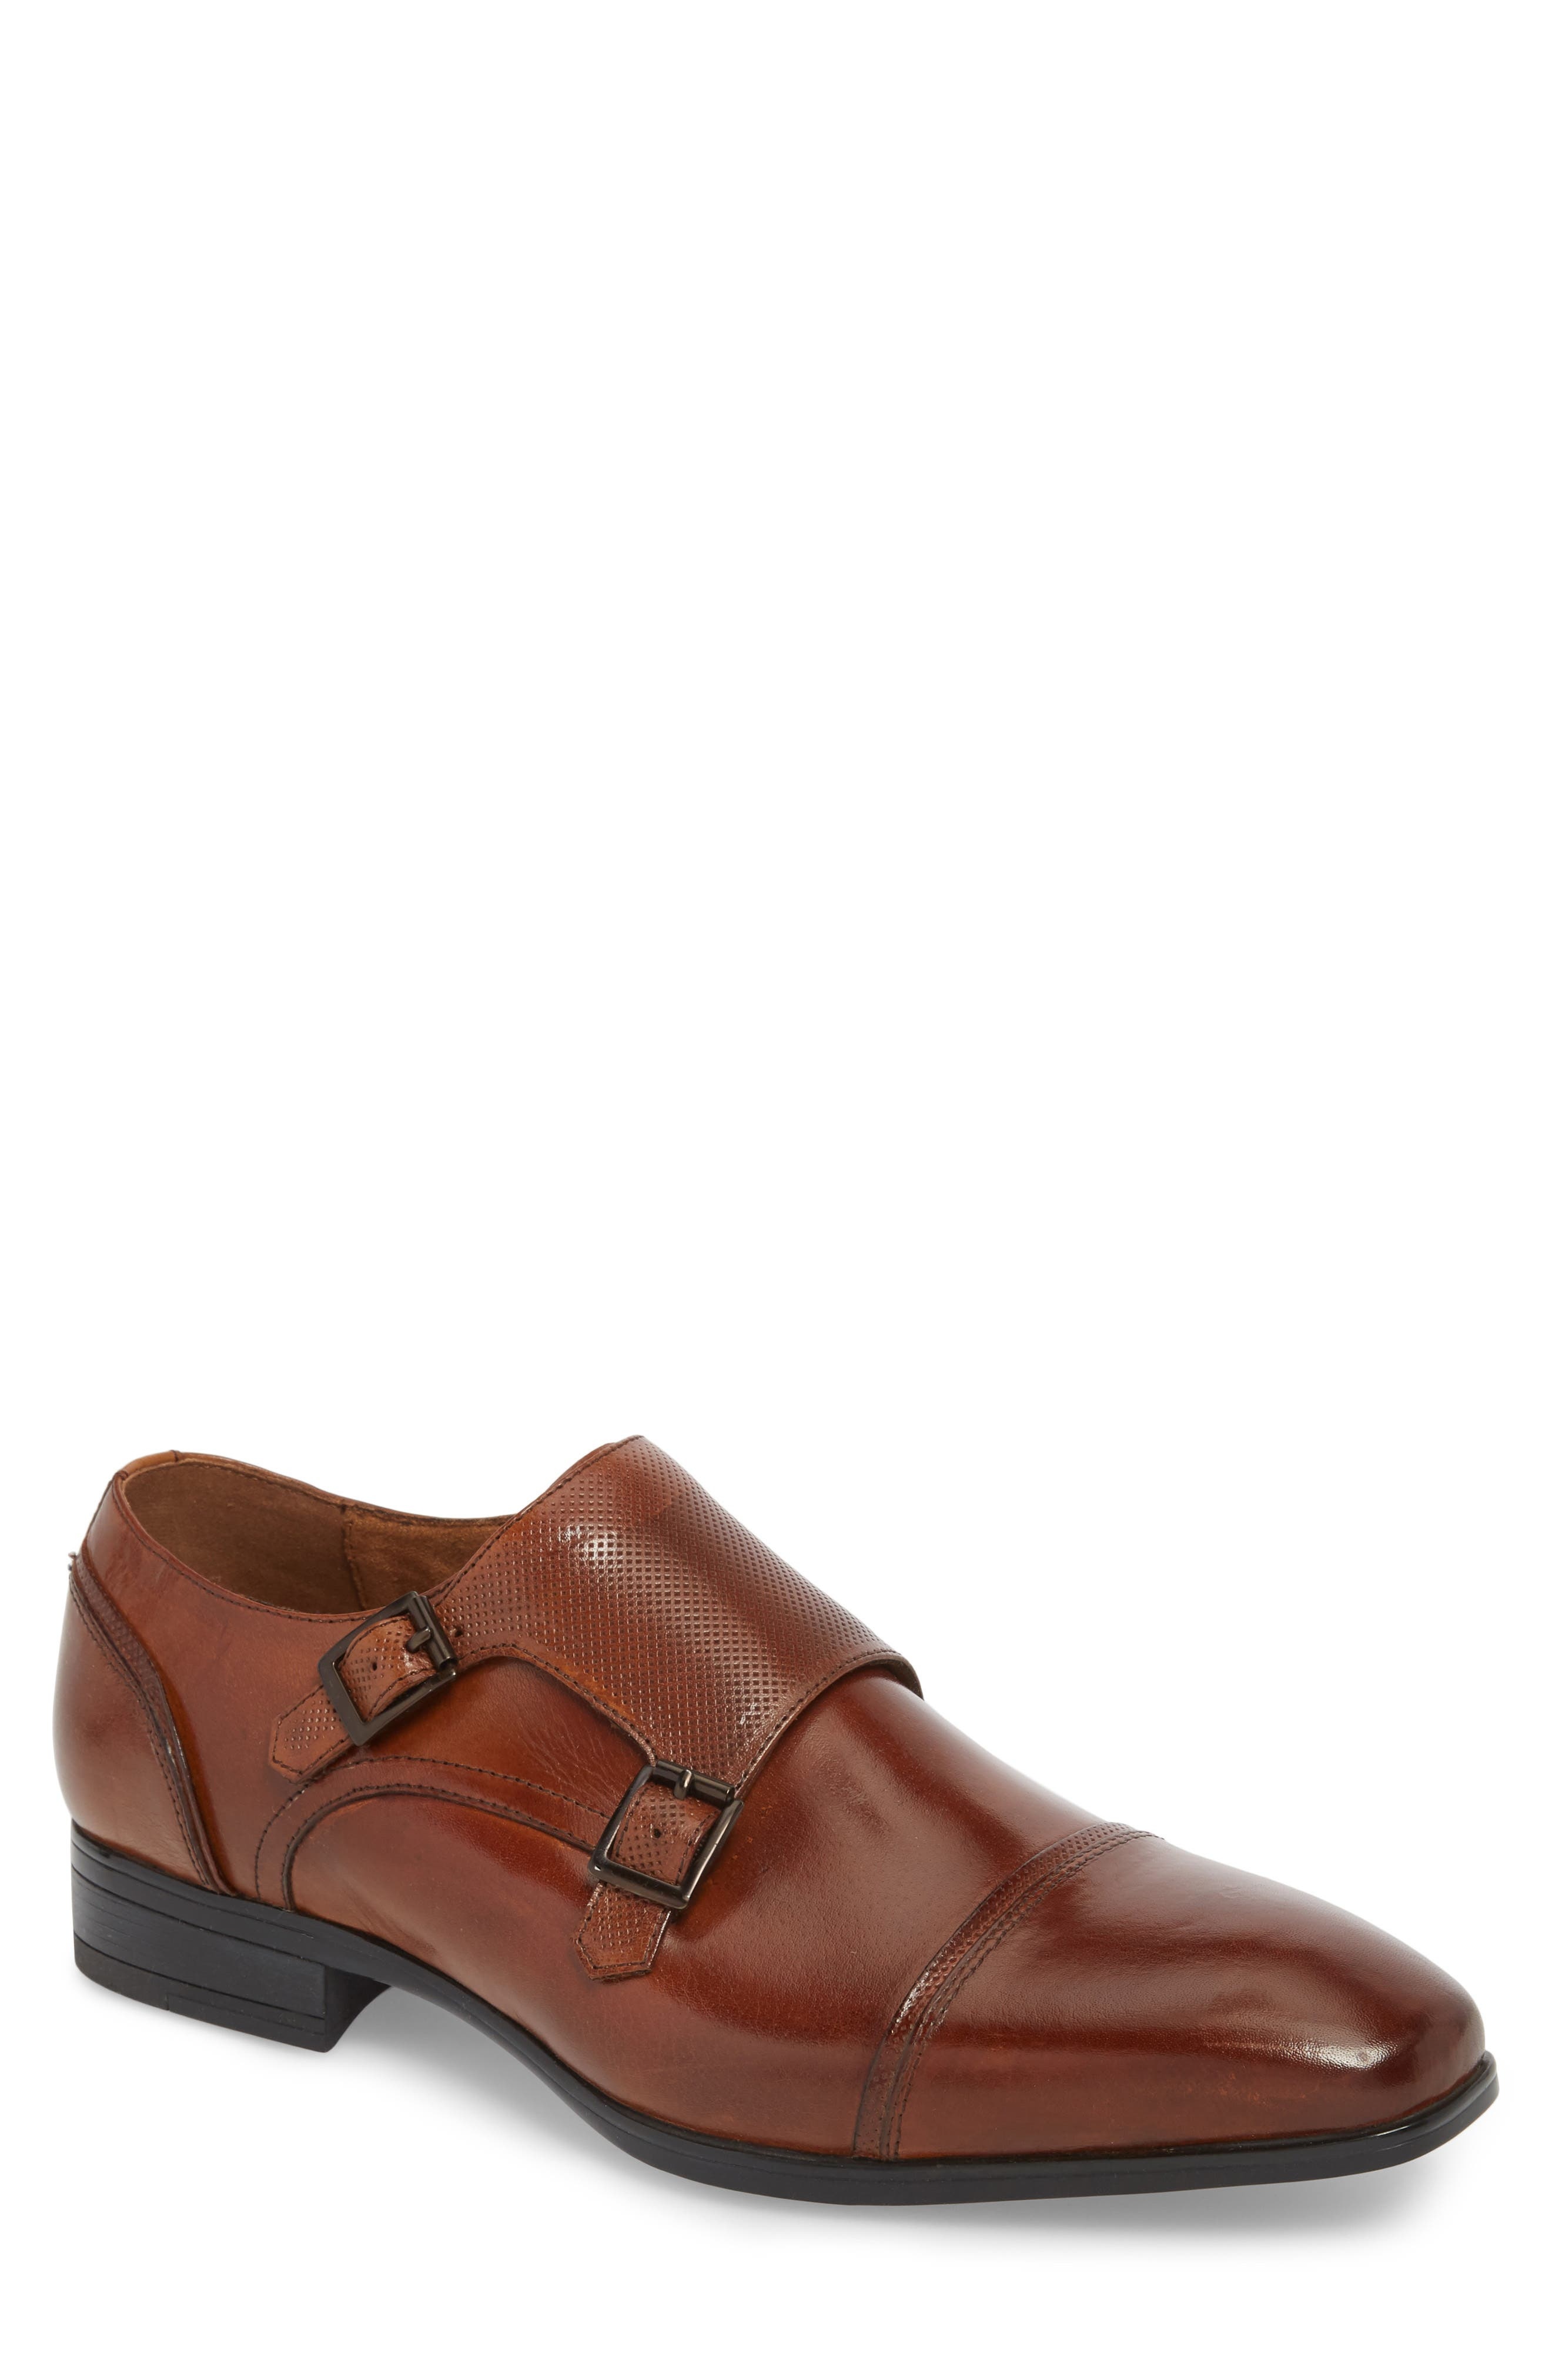 Oliver Cap Toe Monk Shoe,                         Main,                         color, Cognac Leather